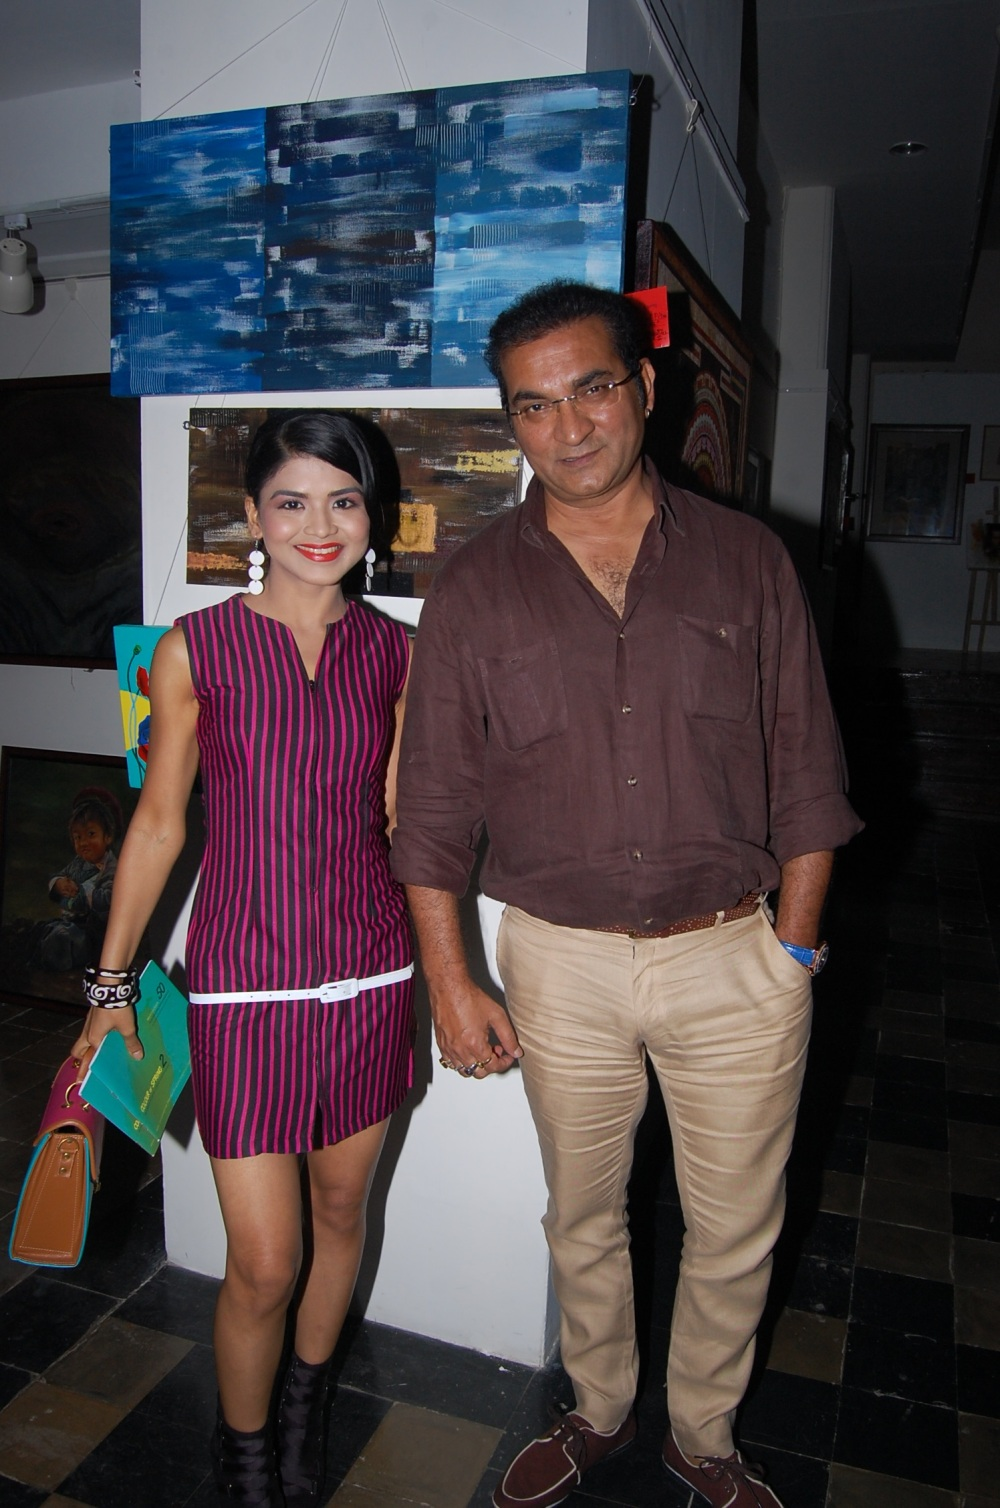 artist-n-actress-rashmi-pitre-with-singer-abhijeet-bhattacharya